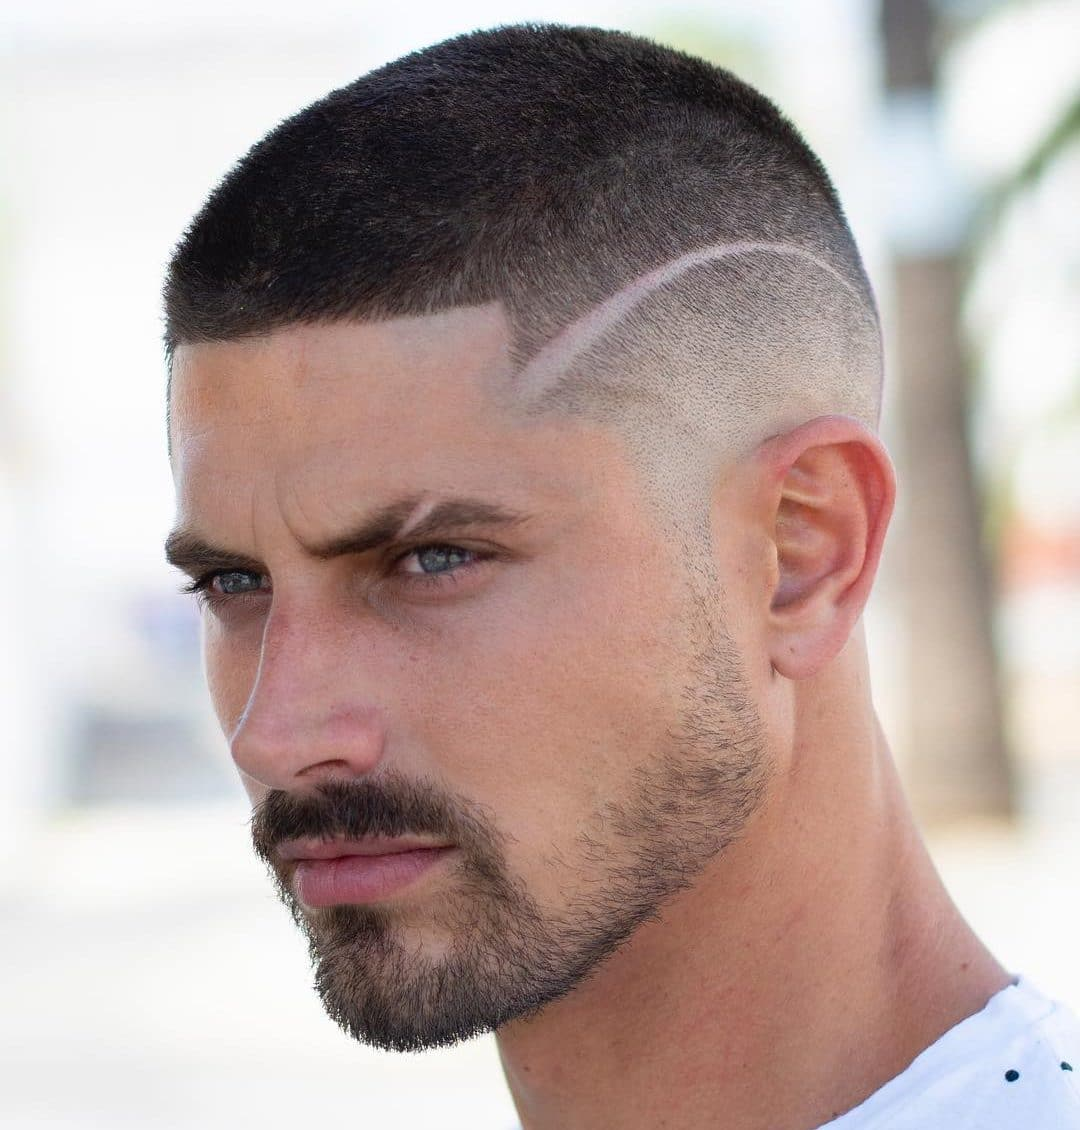 Types Of Haircuts For Men (All Styles For 2020)